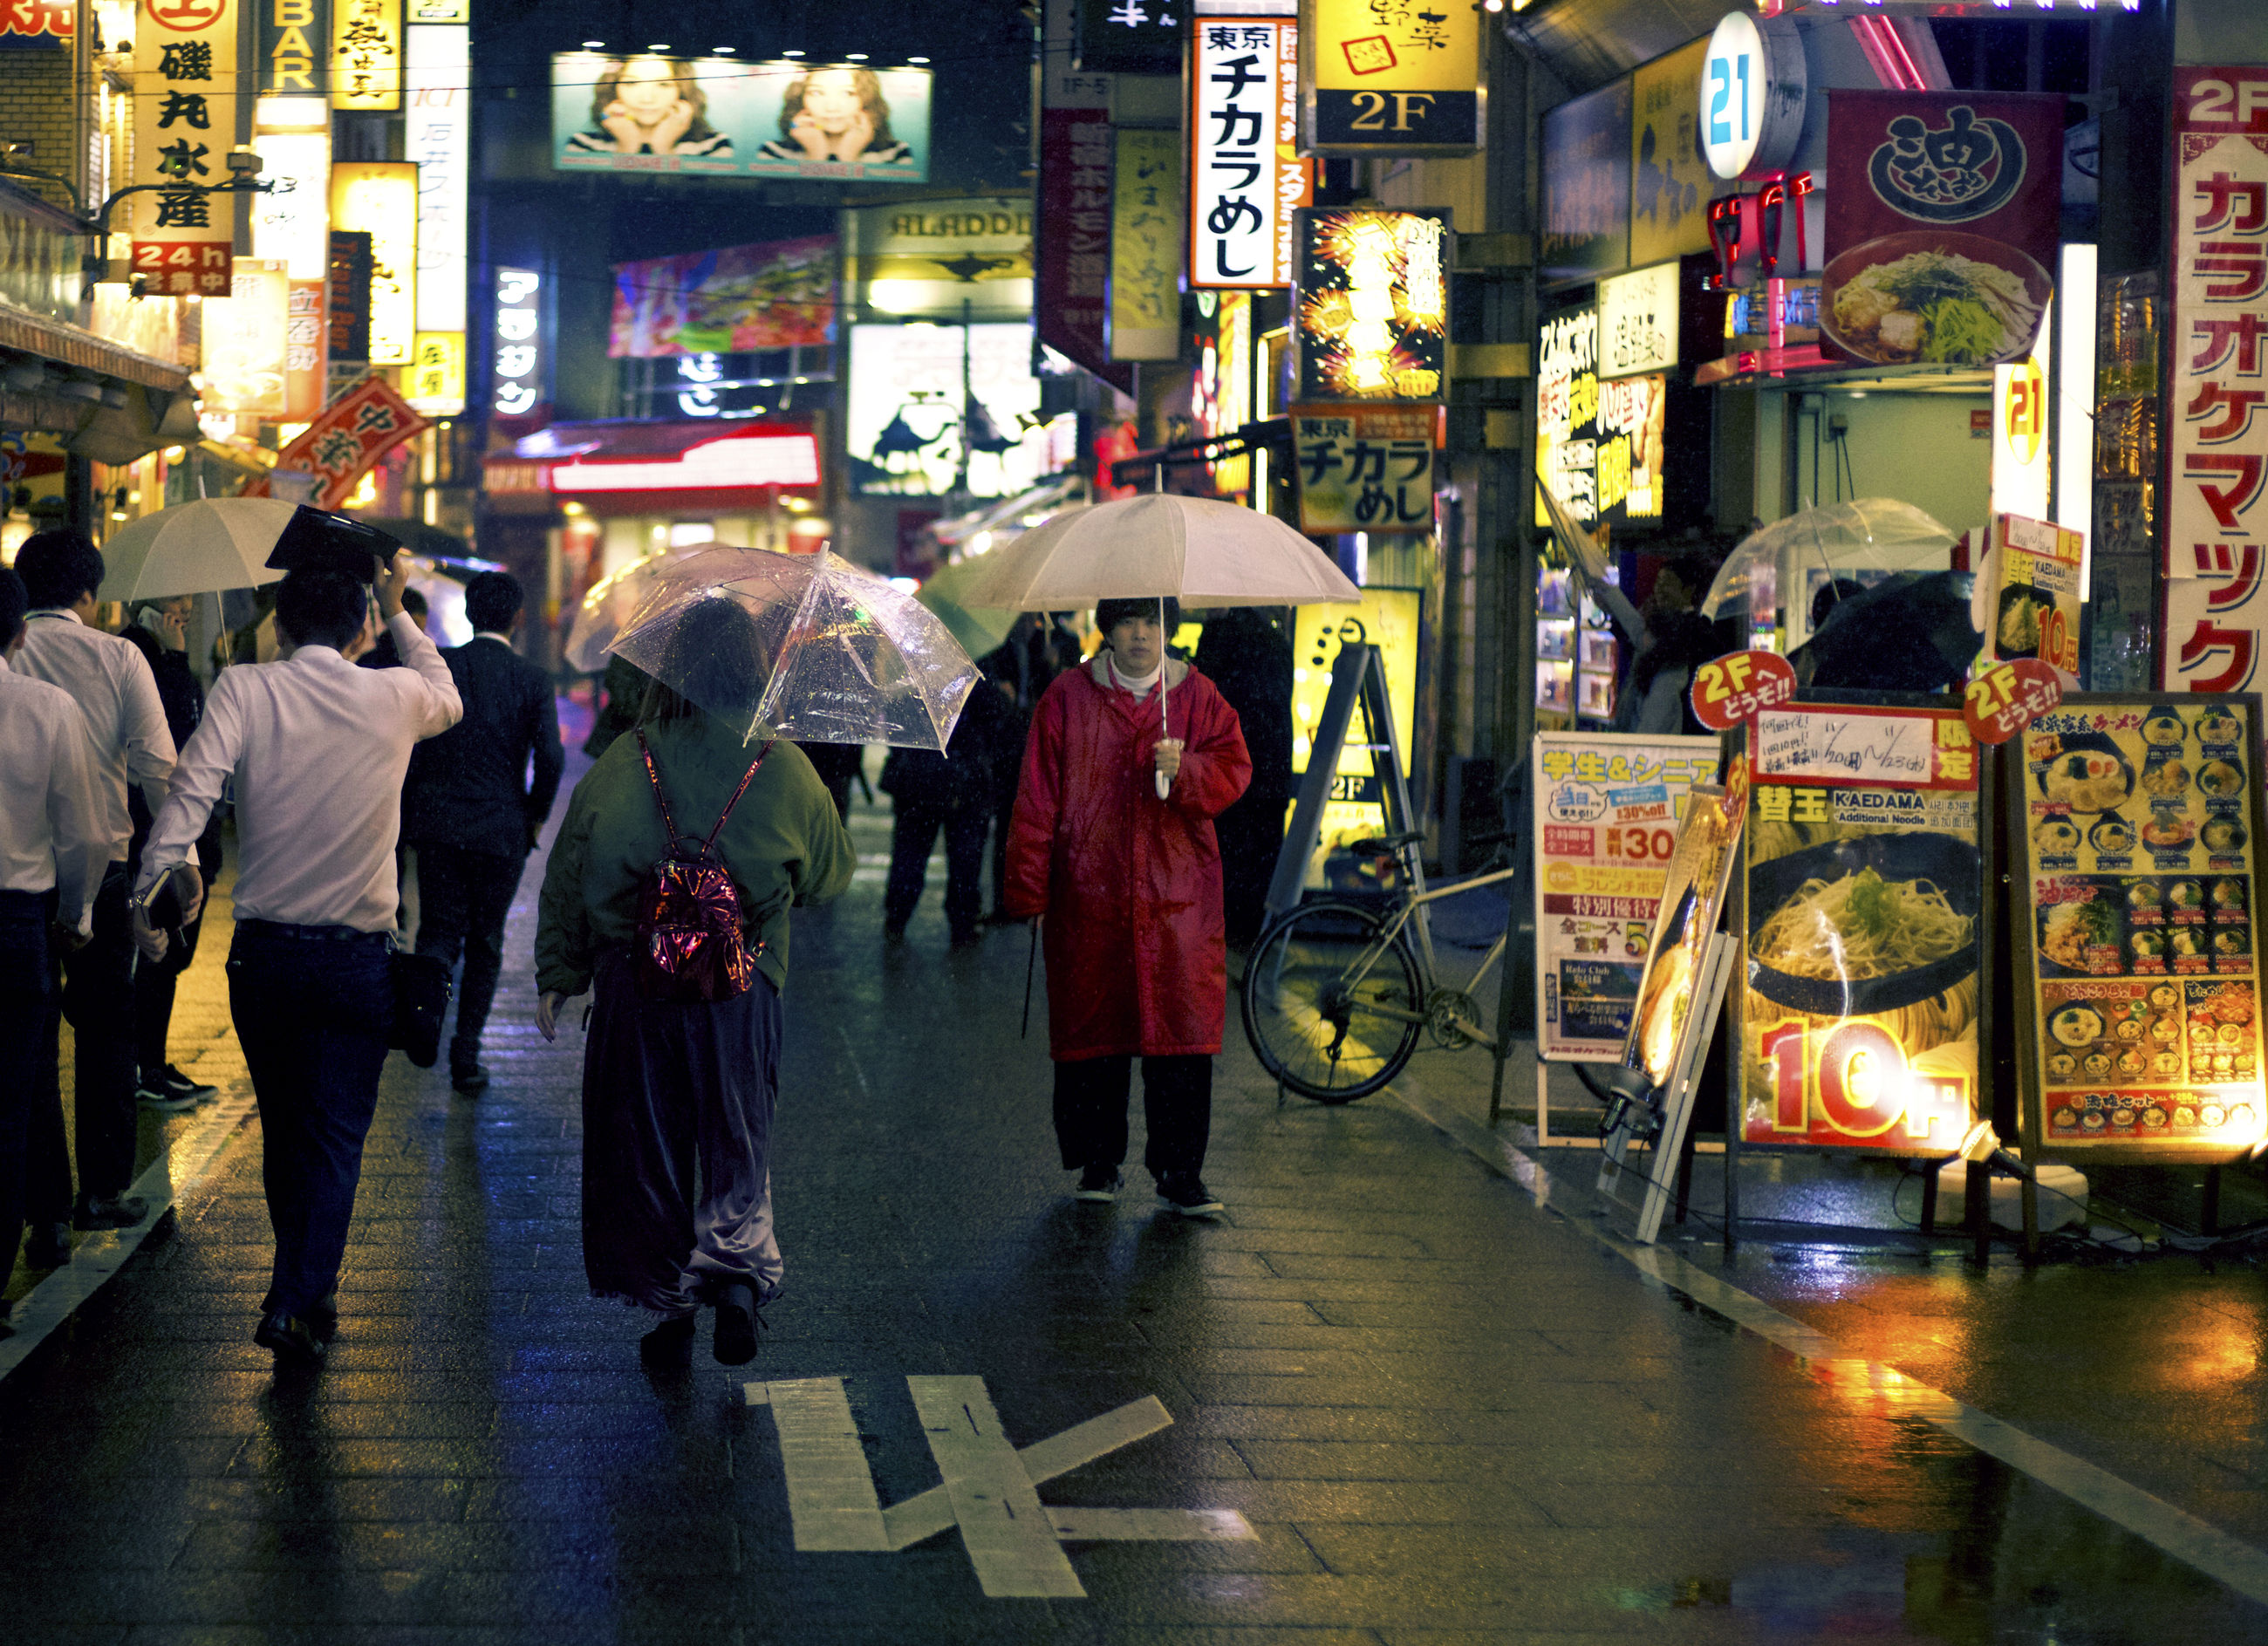 group of people, city, illuminated, city life, real people, architecture, walking, large group of people, street, night, text, crowd, lifestyles, adult, building exterior, transportation, men, women, city street, rain, outdoors